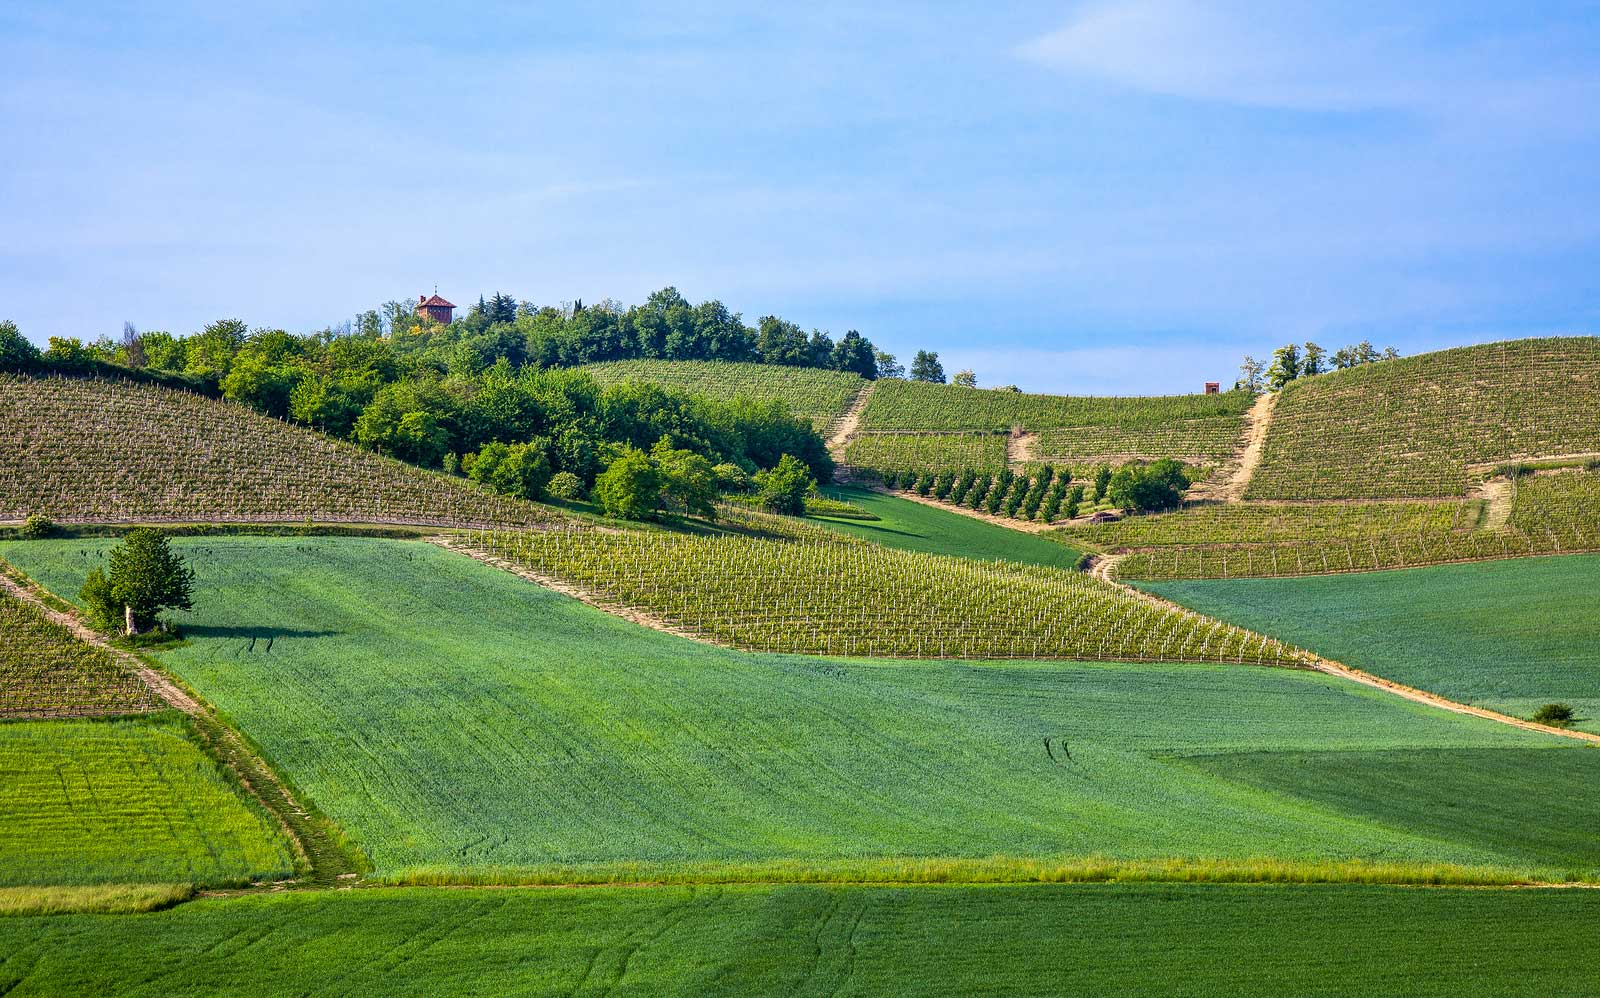 The hills of Monferrato in Piedmont, Italy.